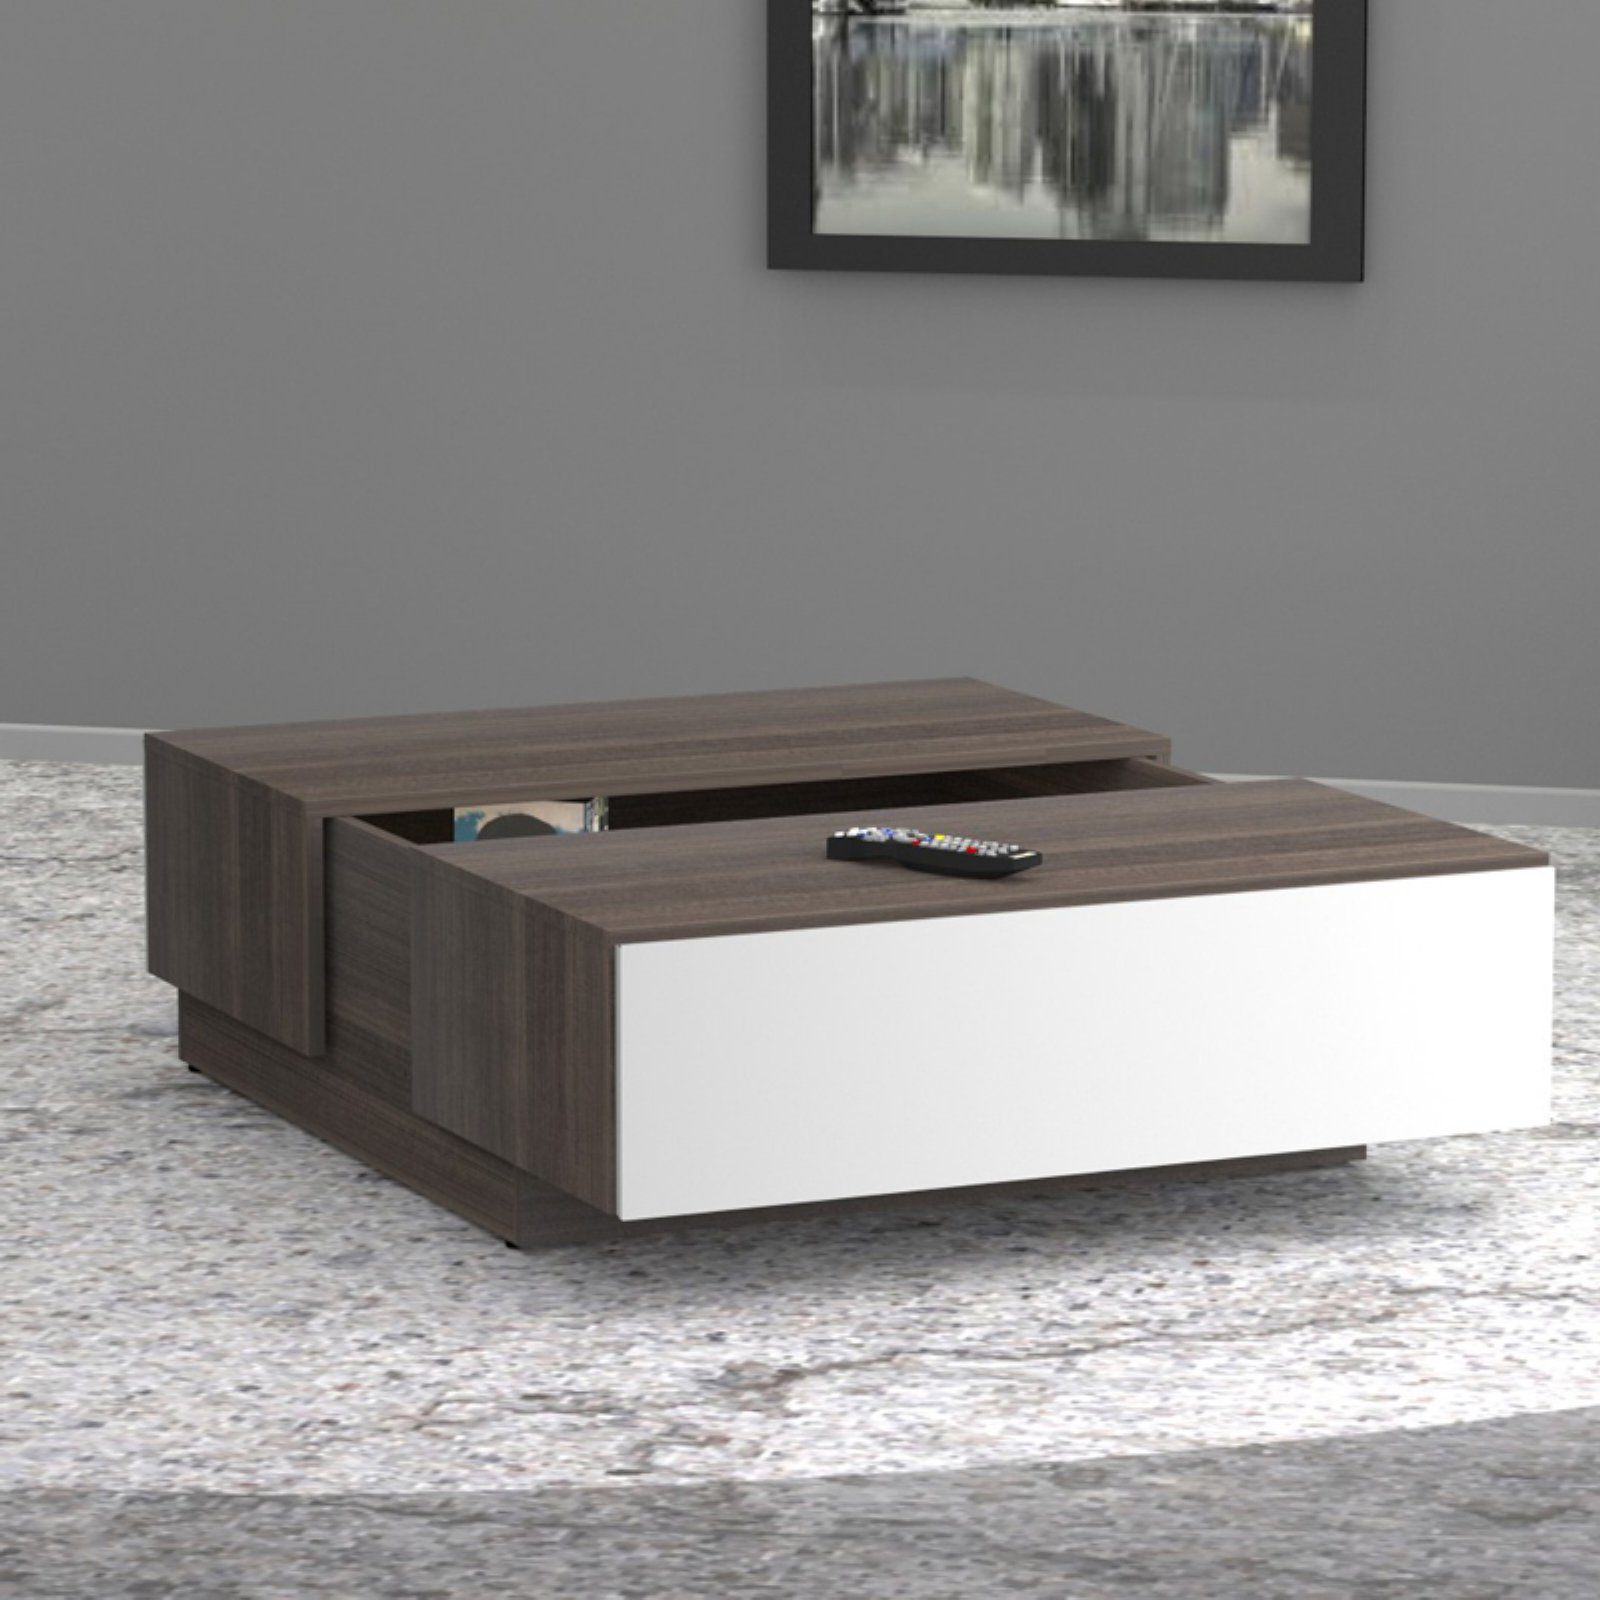 Popular Nexera Allure Coffee Table With Hidden Storage, White/ebony Intended For Allure Cocktail Tables (View 15 of 20)